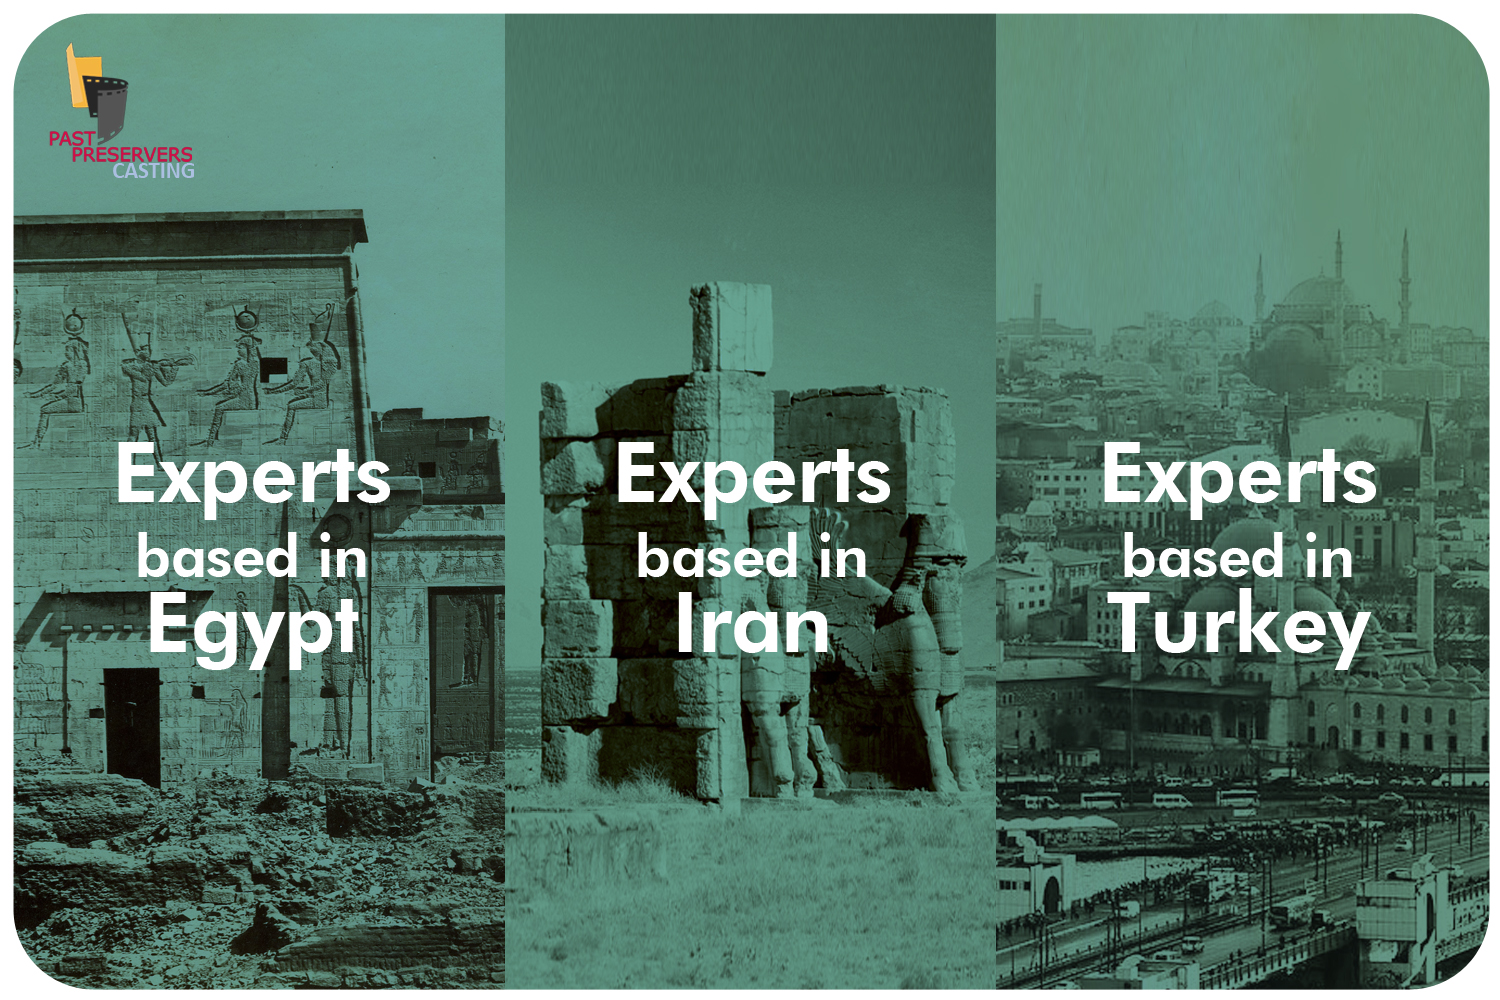 Experts based in Egypt, Iran & Turkey Needed!